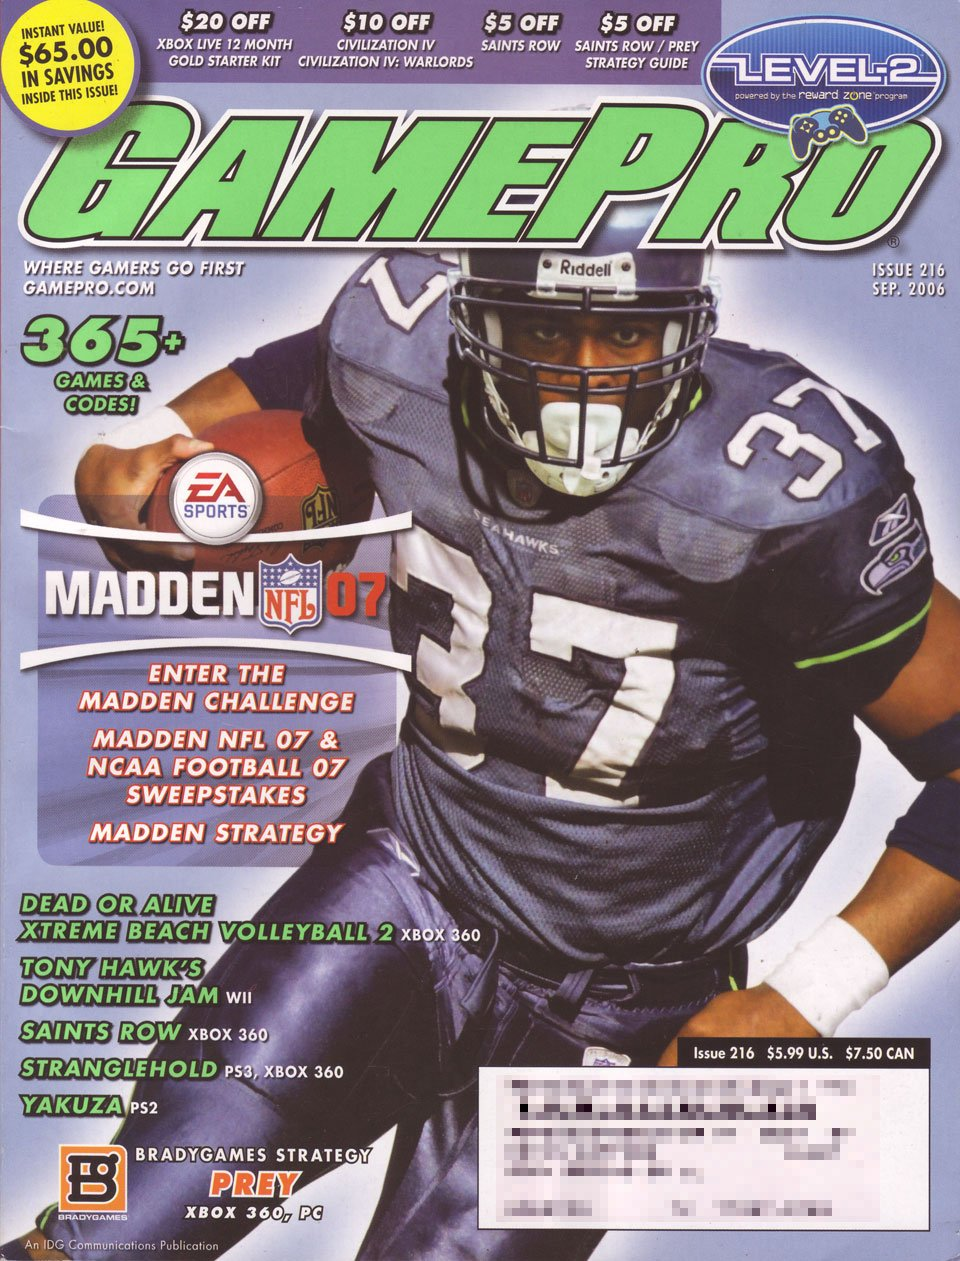 GamePro Issue 216 September 2006 (Subscribers Cover)